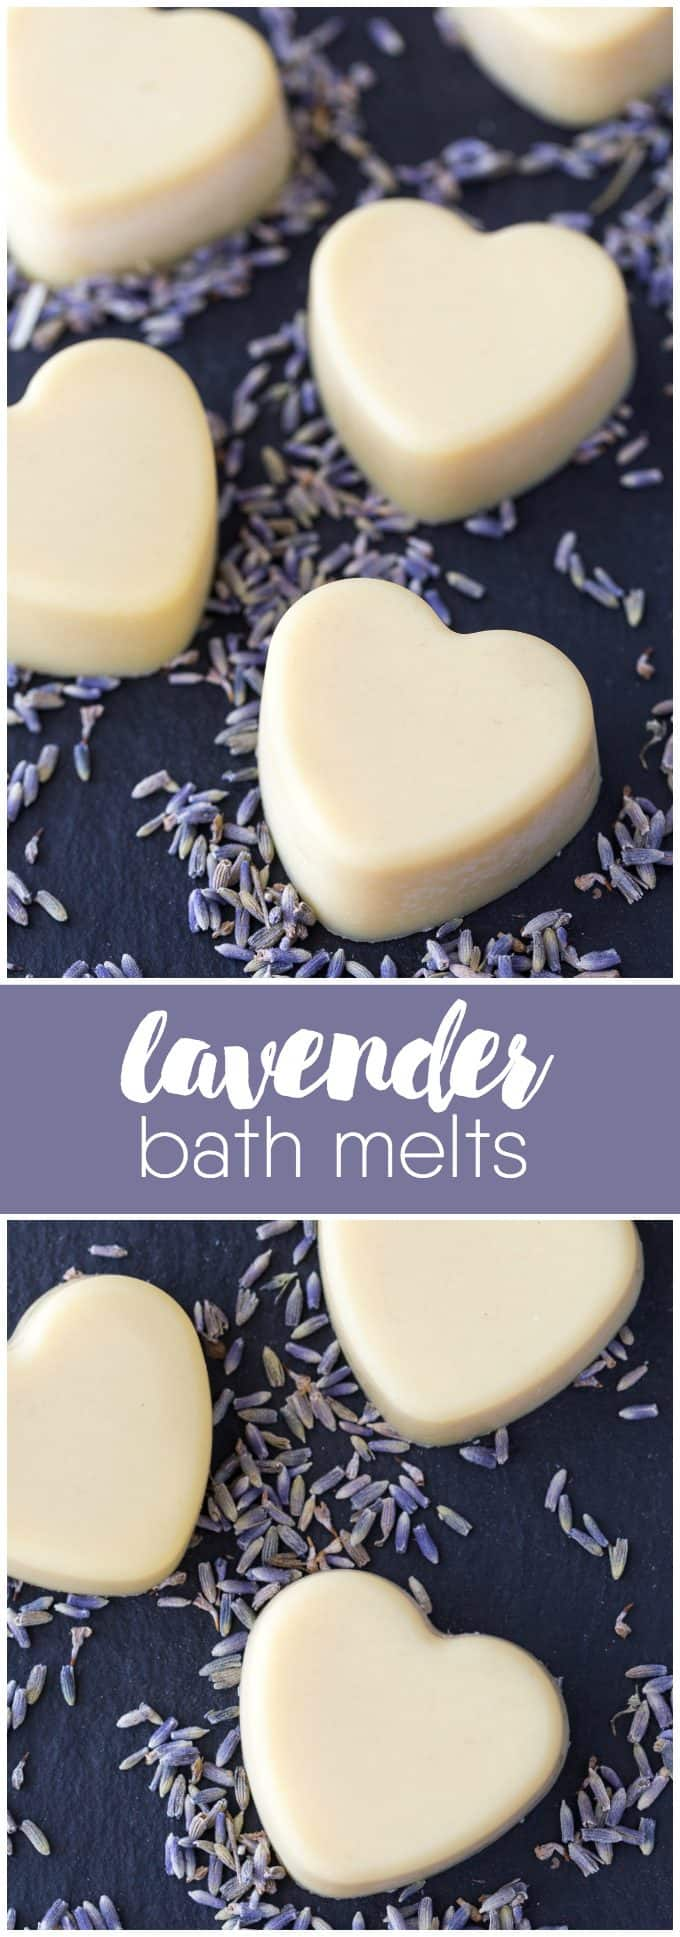 Lavender Bath Melts - Relax in a bath with the soothing scent of lavender! This easy DIY beauty recipe is only three ingredients and makes a wonderful gift.